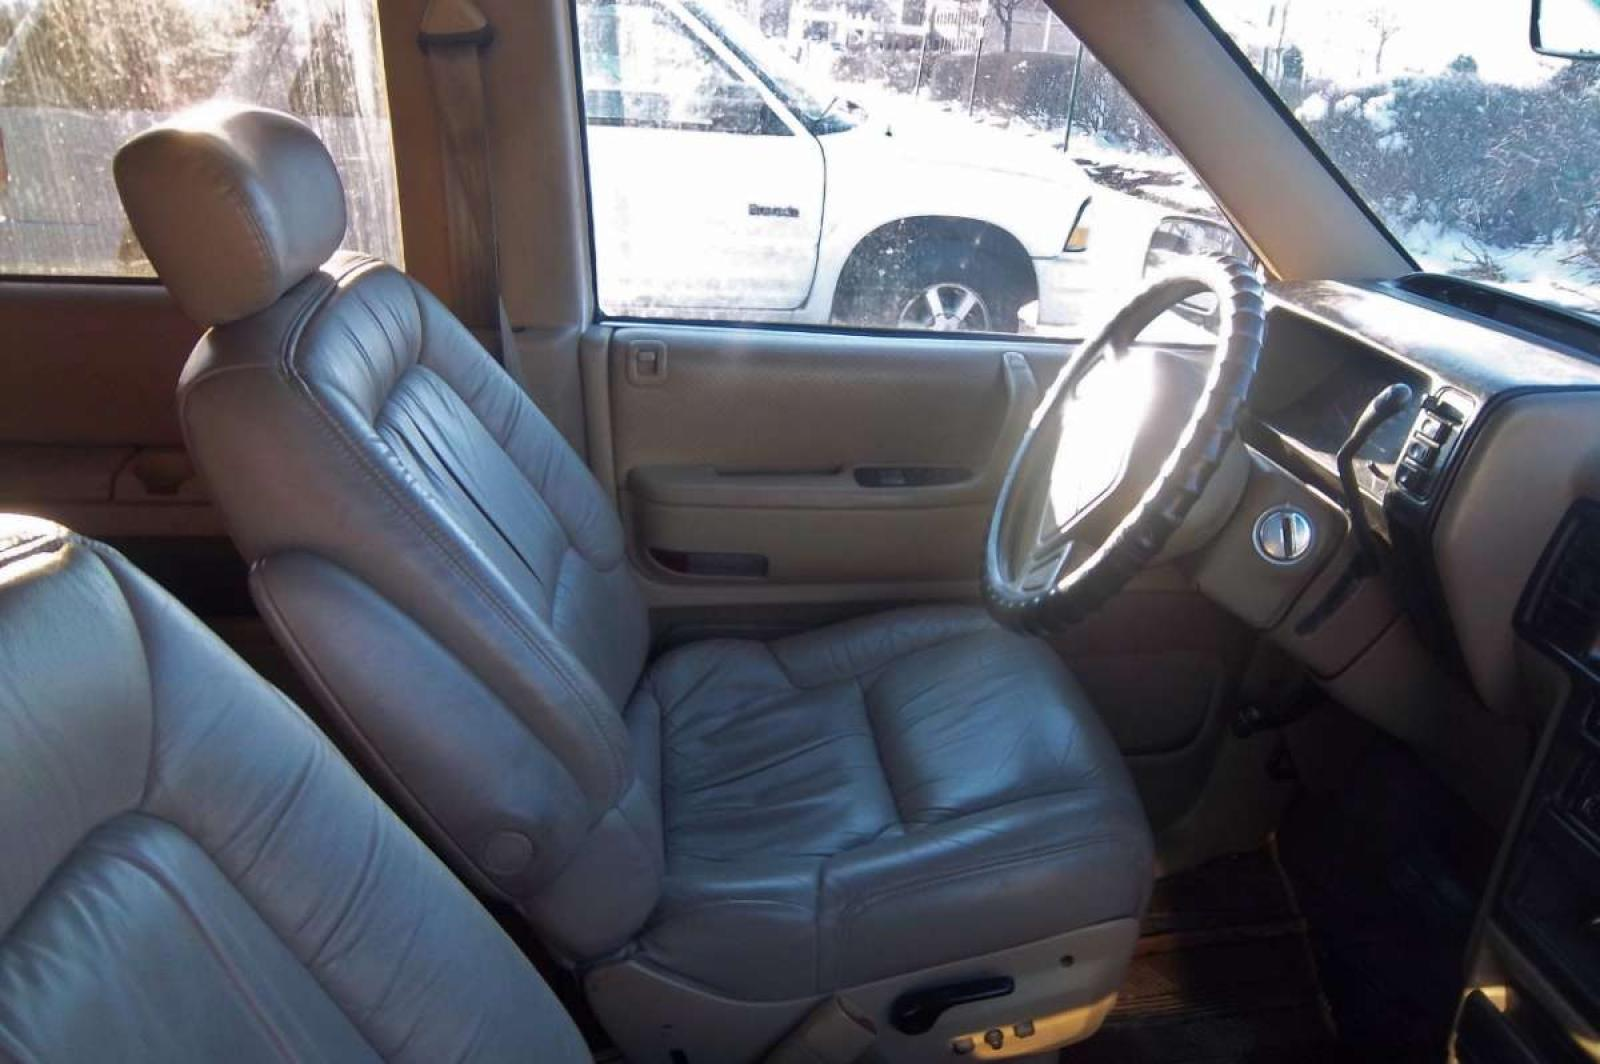 1991 Plymouth Grand Voyager Information And Photos Zombiedrive Acclaim Engine Diagram 800 1024 1280 1600 Origin